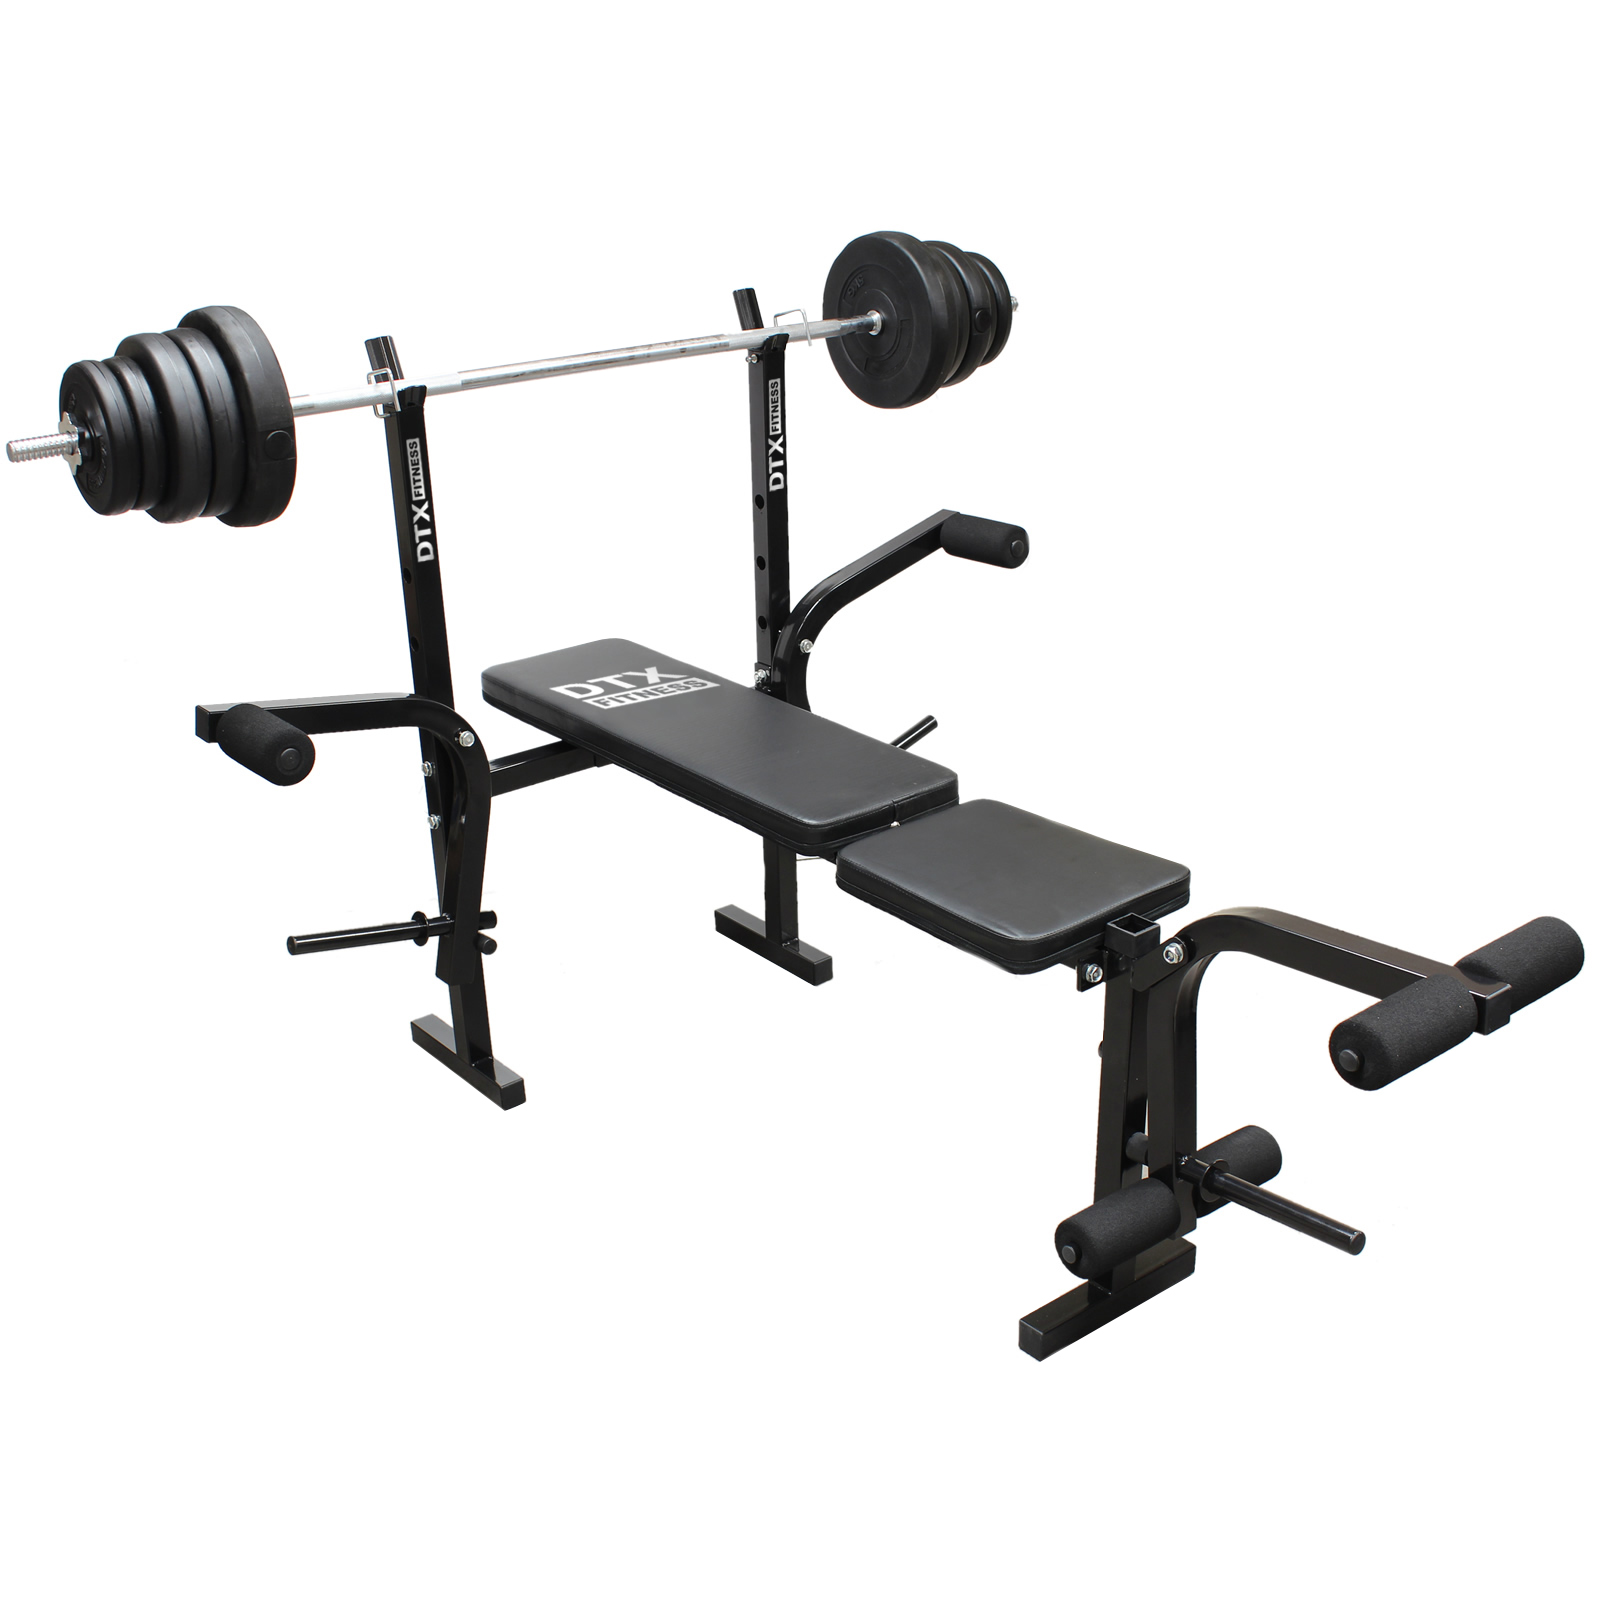 Gym Equipment Legs: DTX Fitness Weights Bench Multi Gym Dumbell Workout Leg